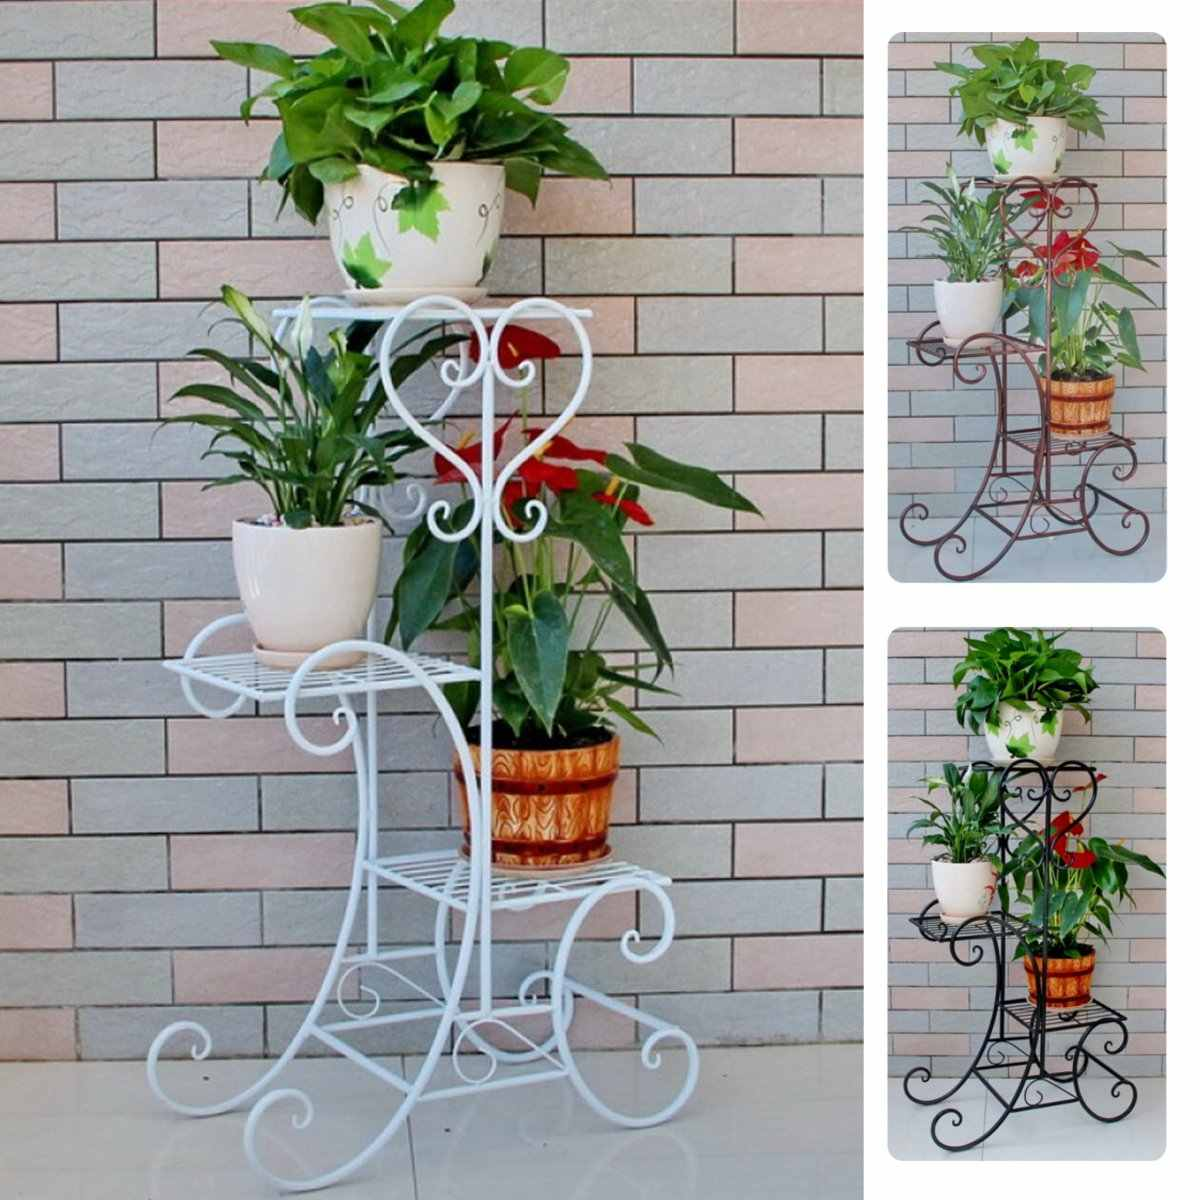 Simple Metal Flower Plant Display Stand Home Garden 3 Tiers Plant Flower Pot Storage Rack Corner Shelf Balcony Flower Stand